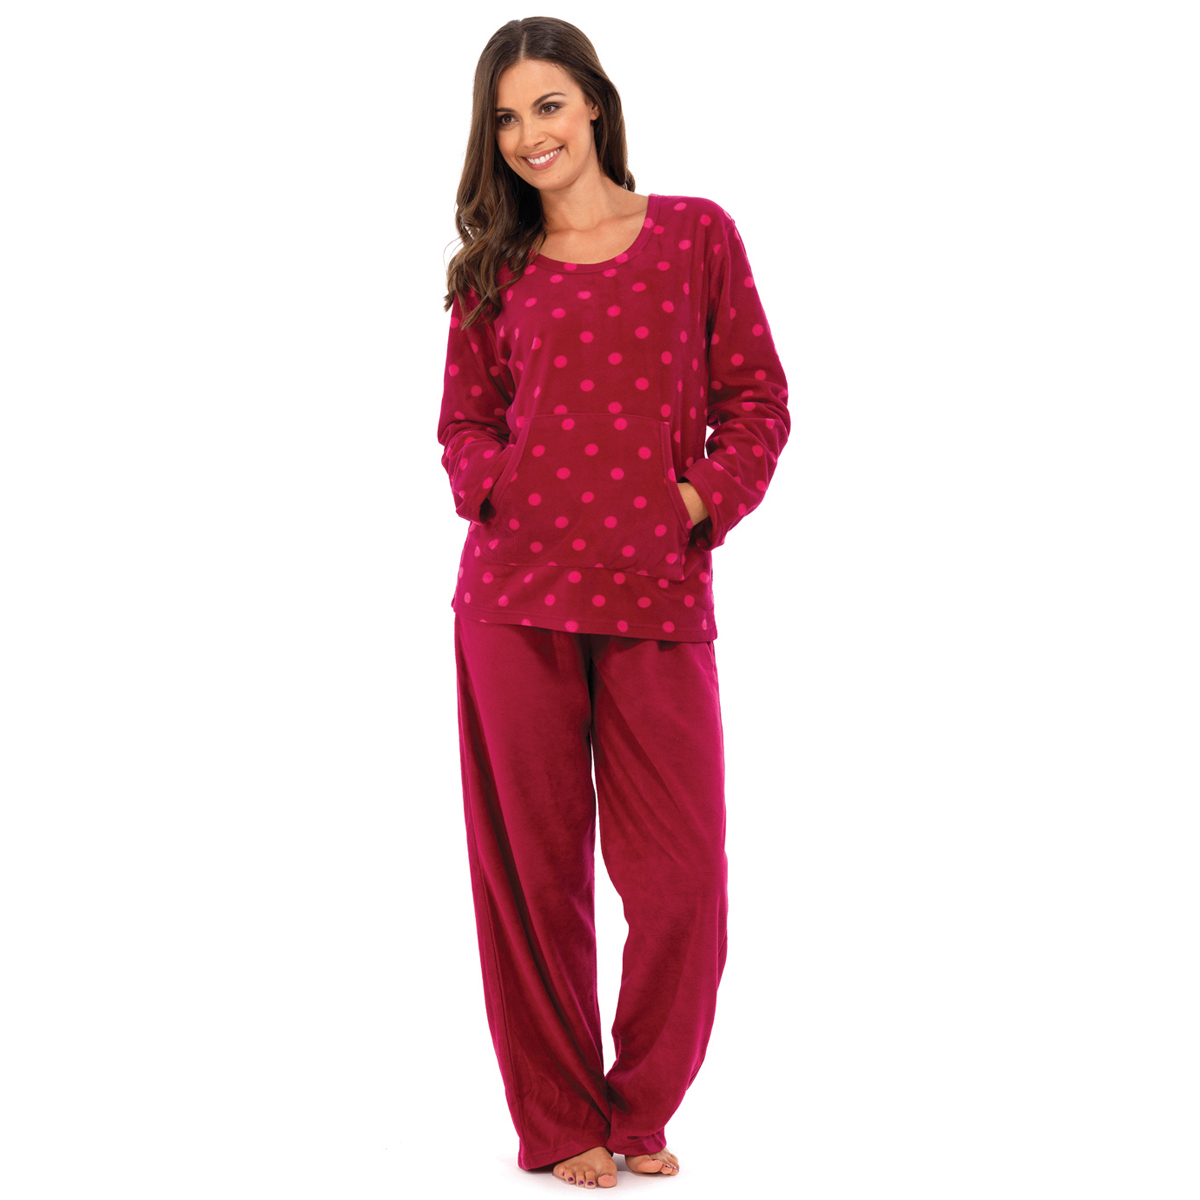 Sexy Sleepwear for Women. Going to bed after a long day of work is something that we all look forward to and having on the right outfit to bed makes a significant difference in .